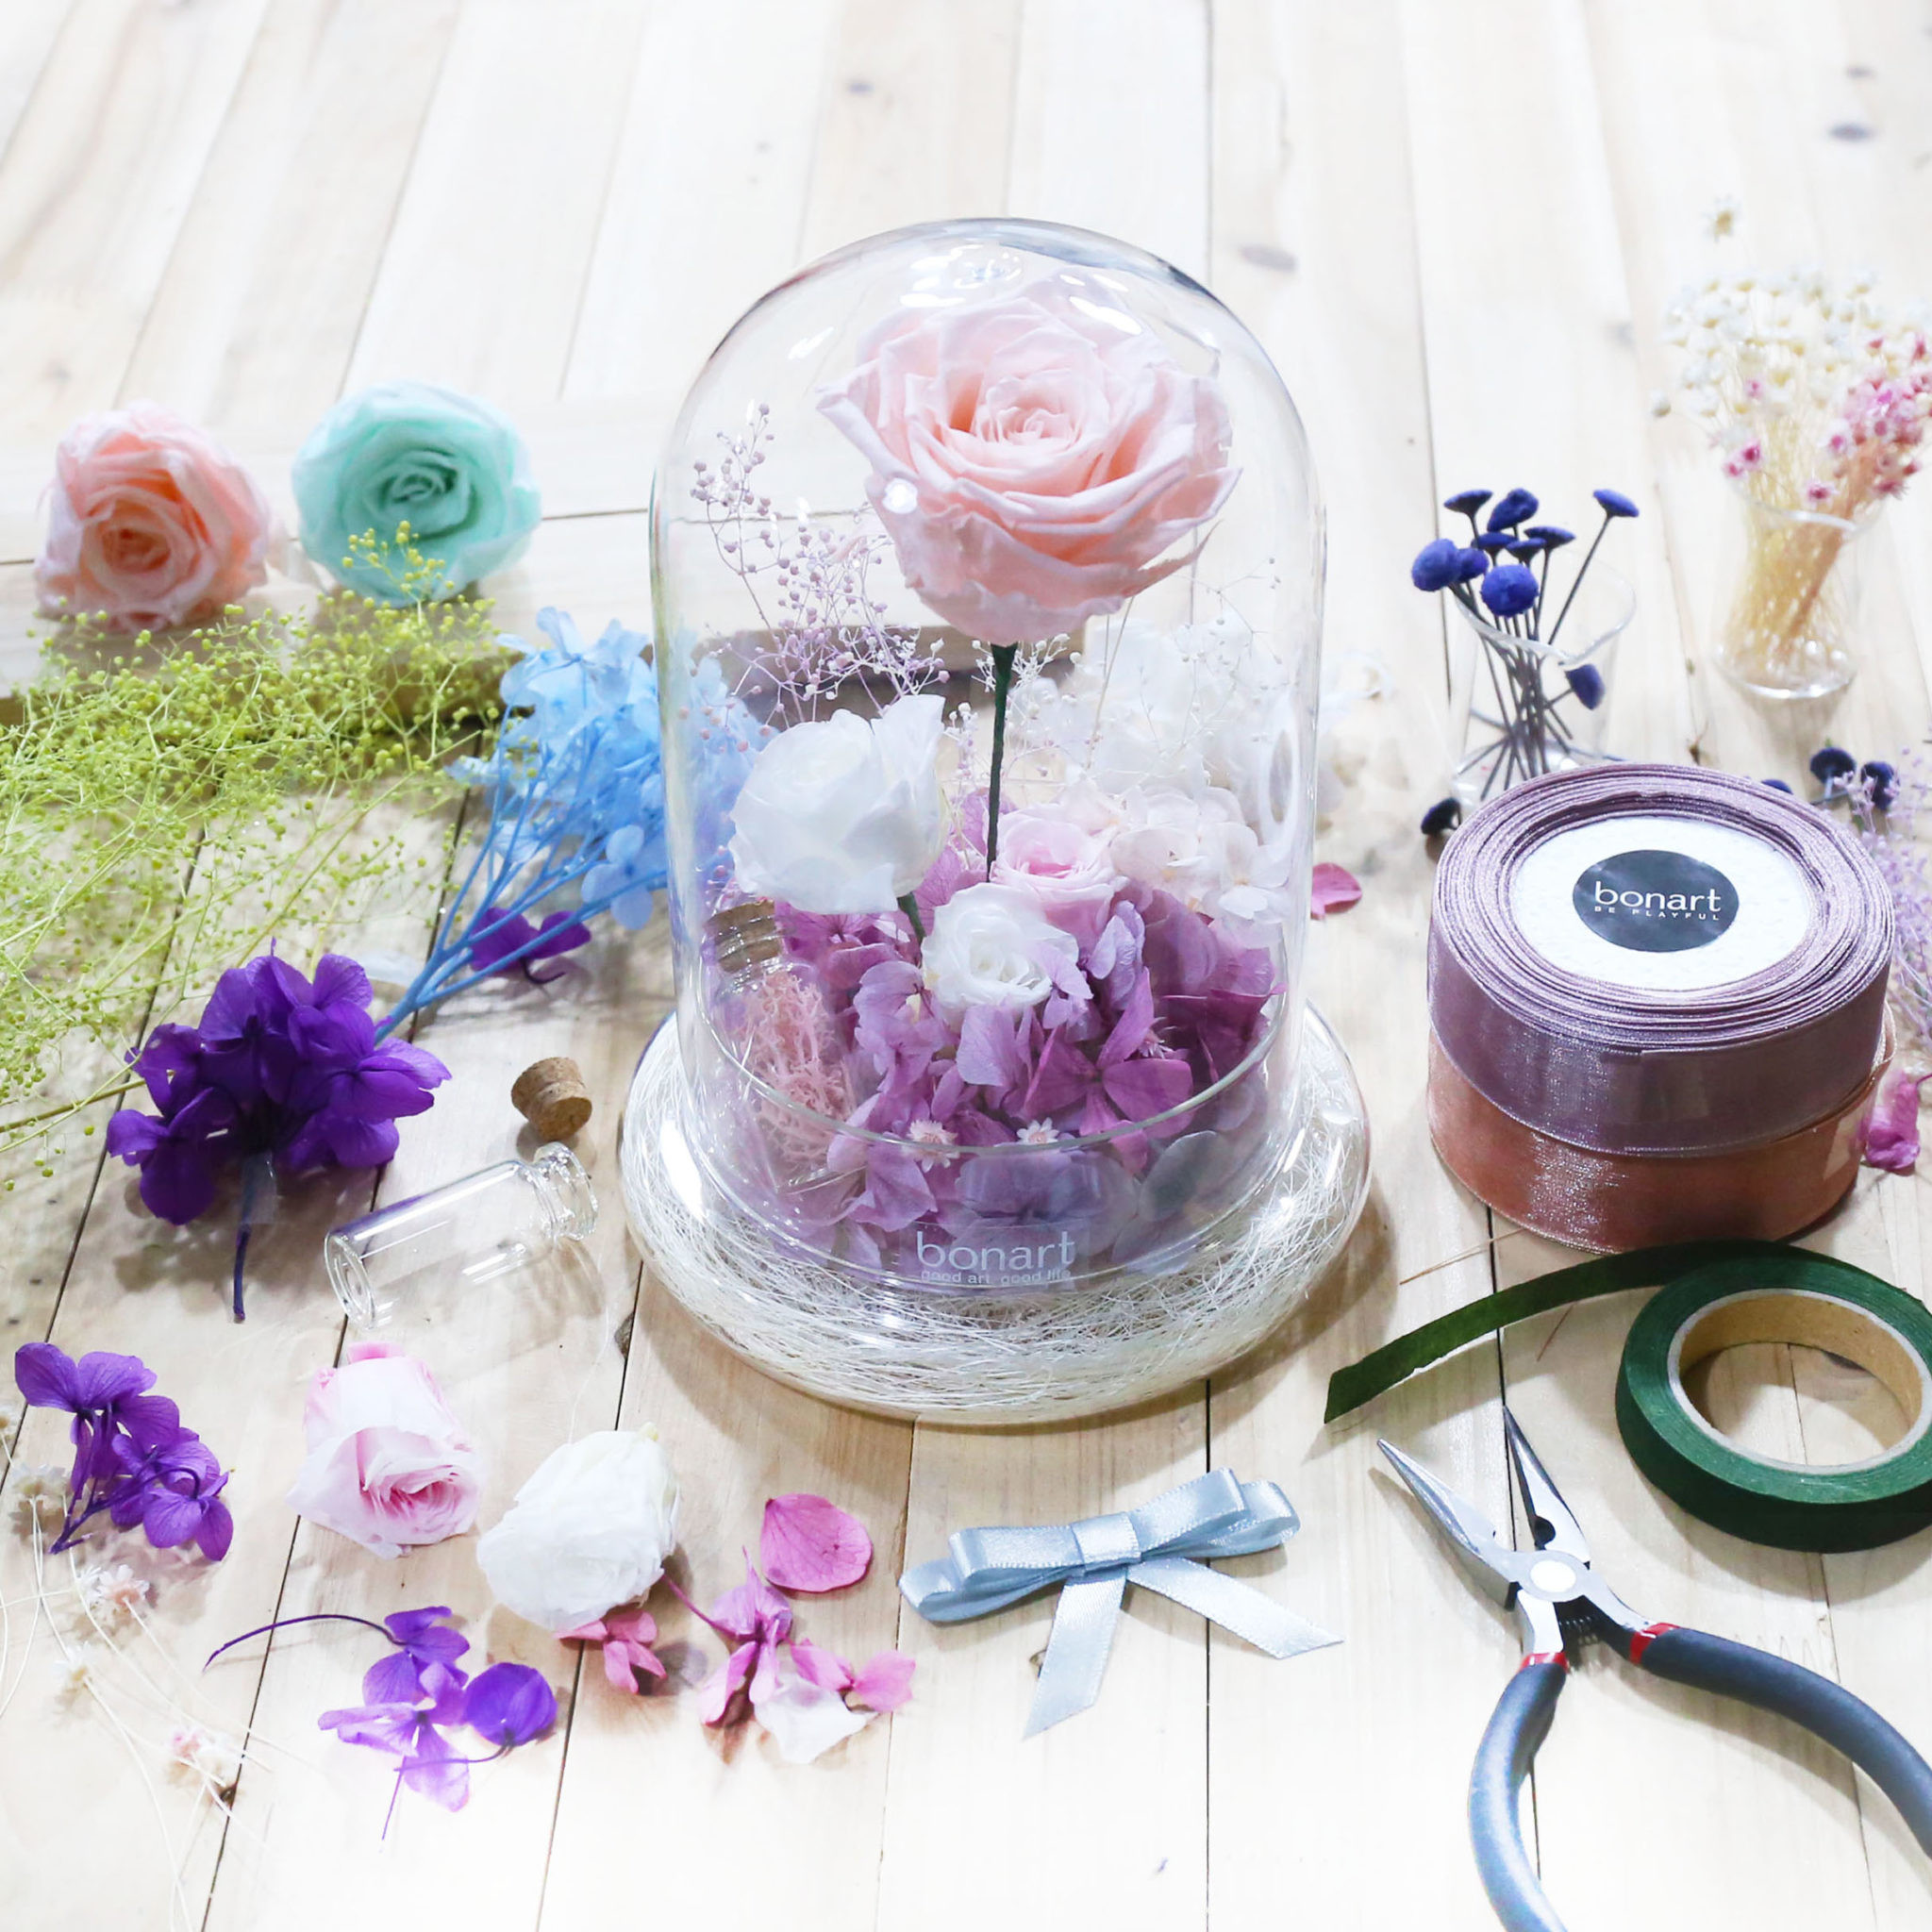 candy bar vase arrangements of workshops preserved floral art bonart regarding the preserved flower is a fabricated flower that allows the flowers freshness to be kept for a long time without losing its beauty colors and texture